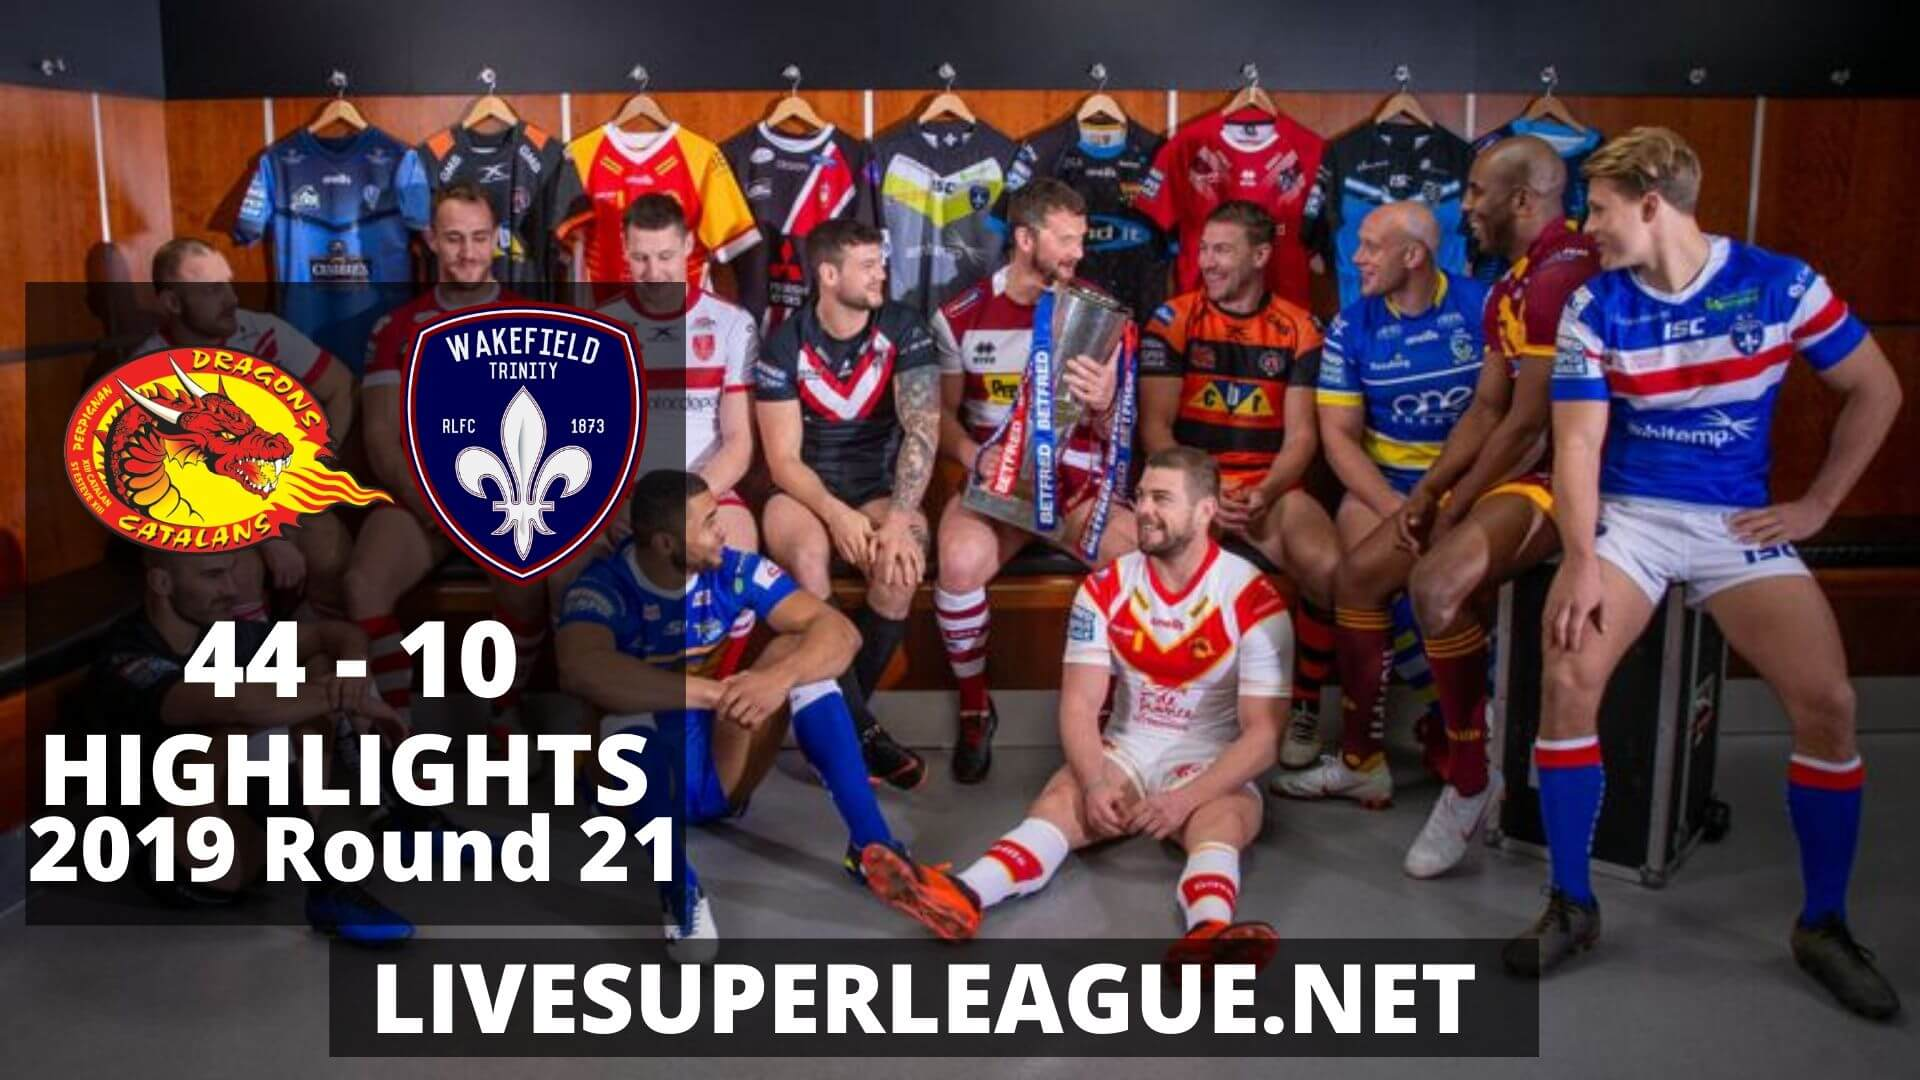 Catalans Dragons Vs Wakefield Trinity Highlights 2019 Round 21